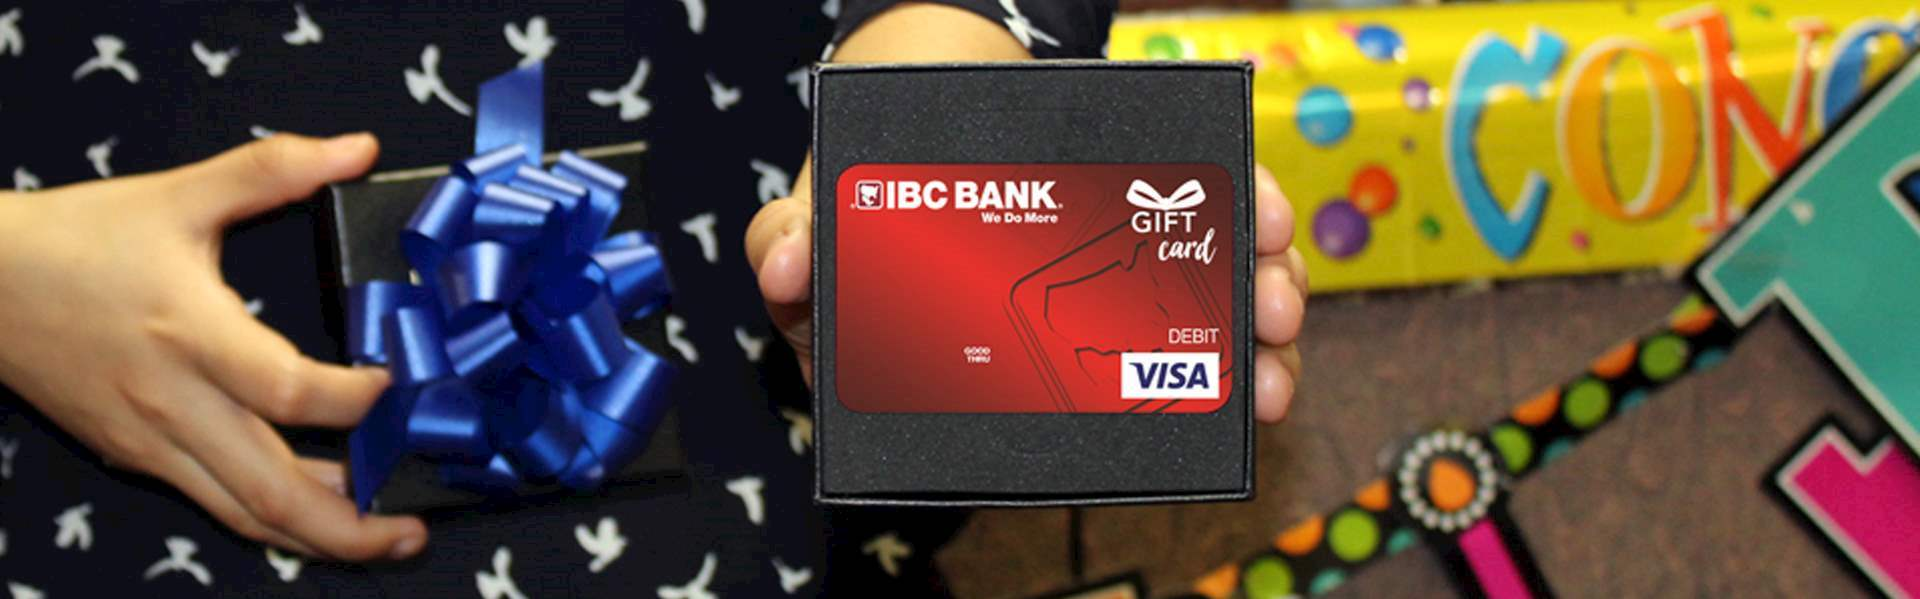 IBC Bank IBC Visa Gift Card